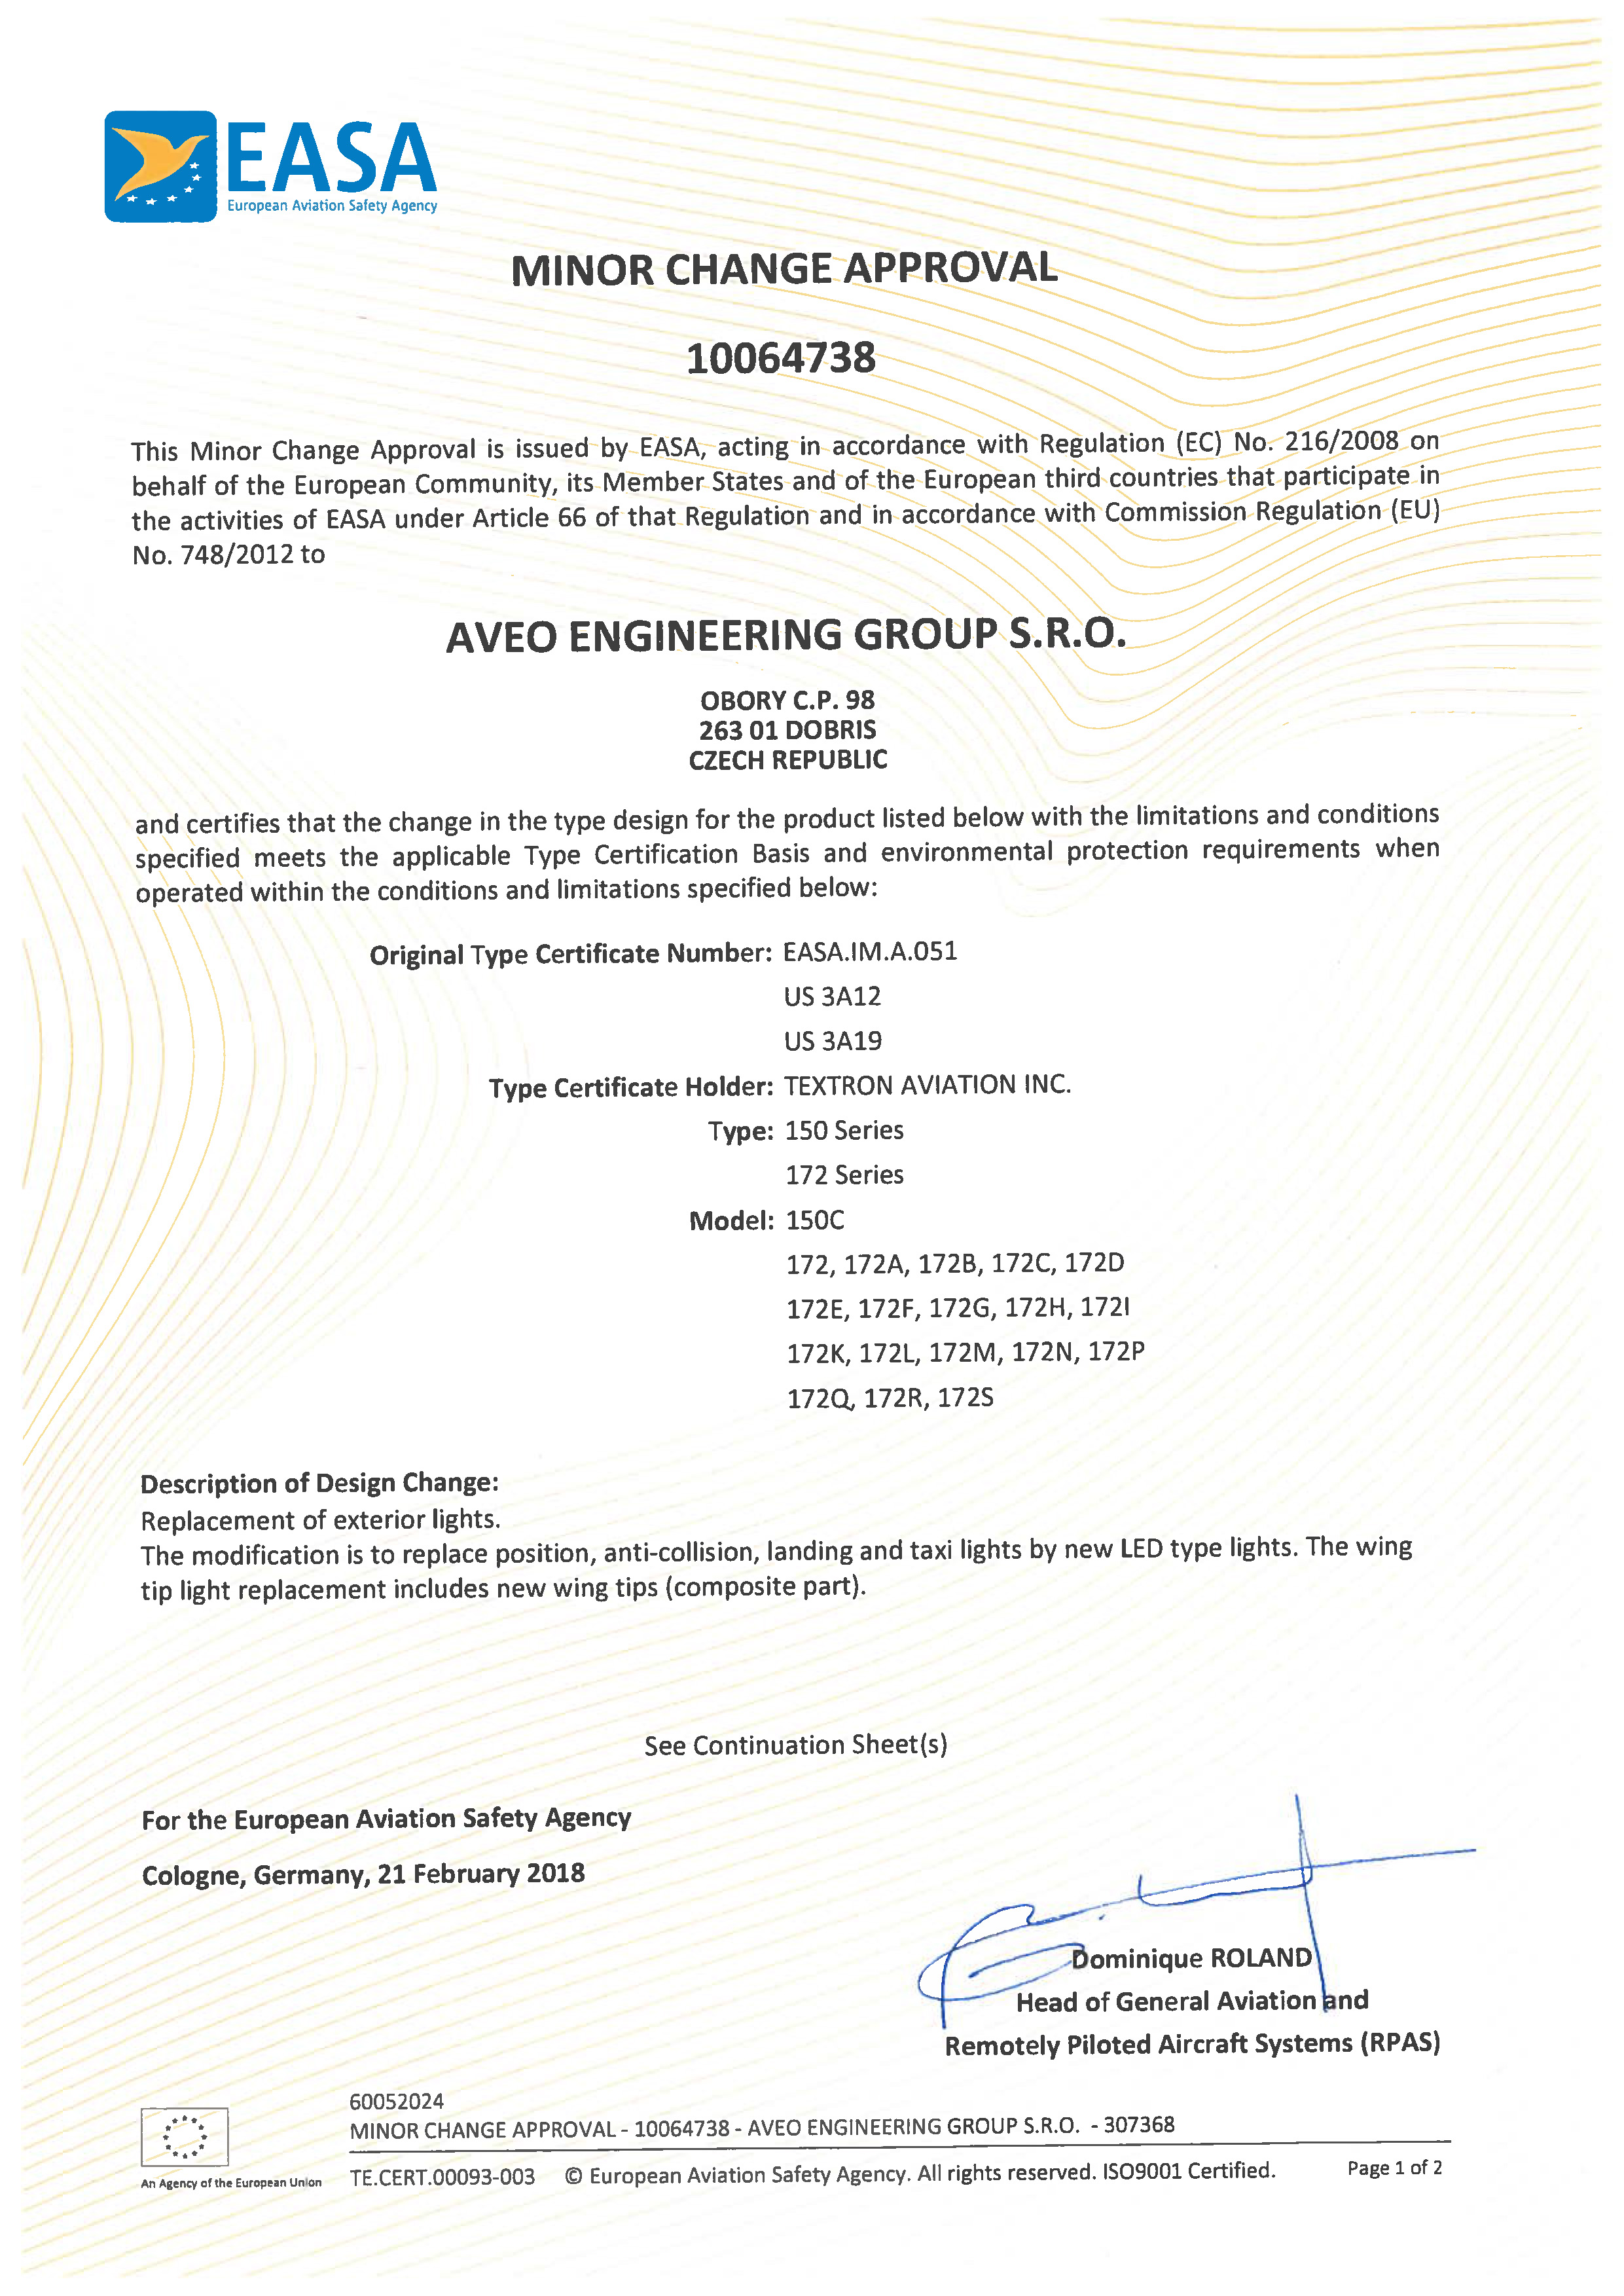 Aveo Engineering Group Achieves Easa Minor Change Approval